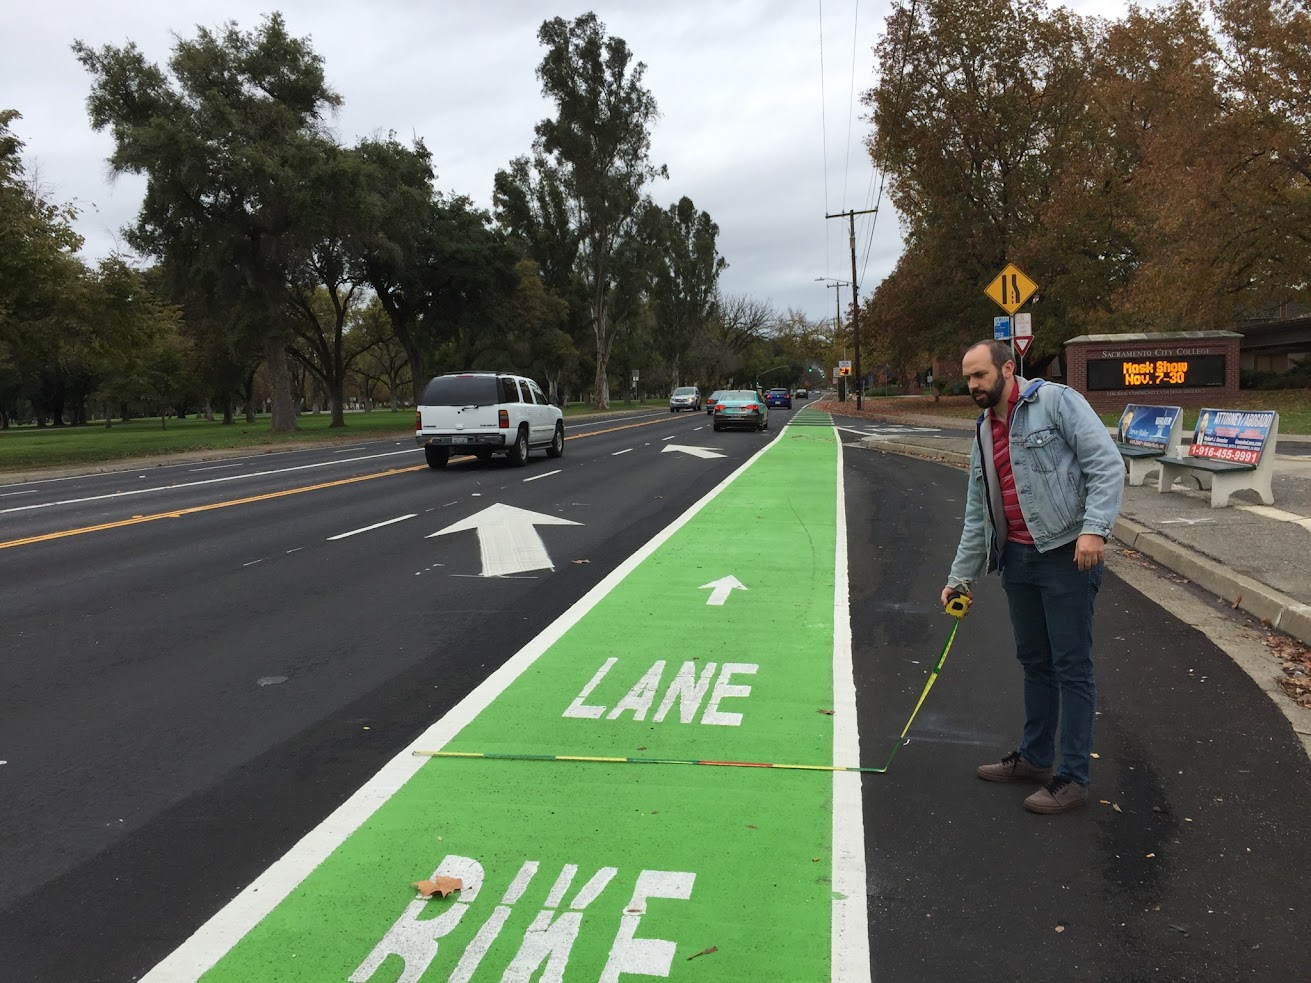 Very wide bicycle lane in high speed area